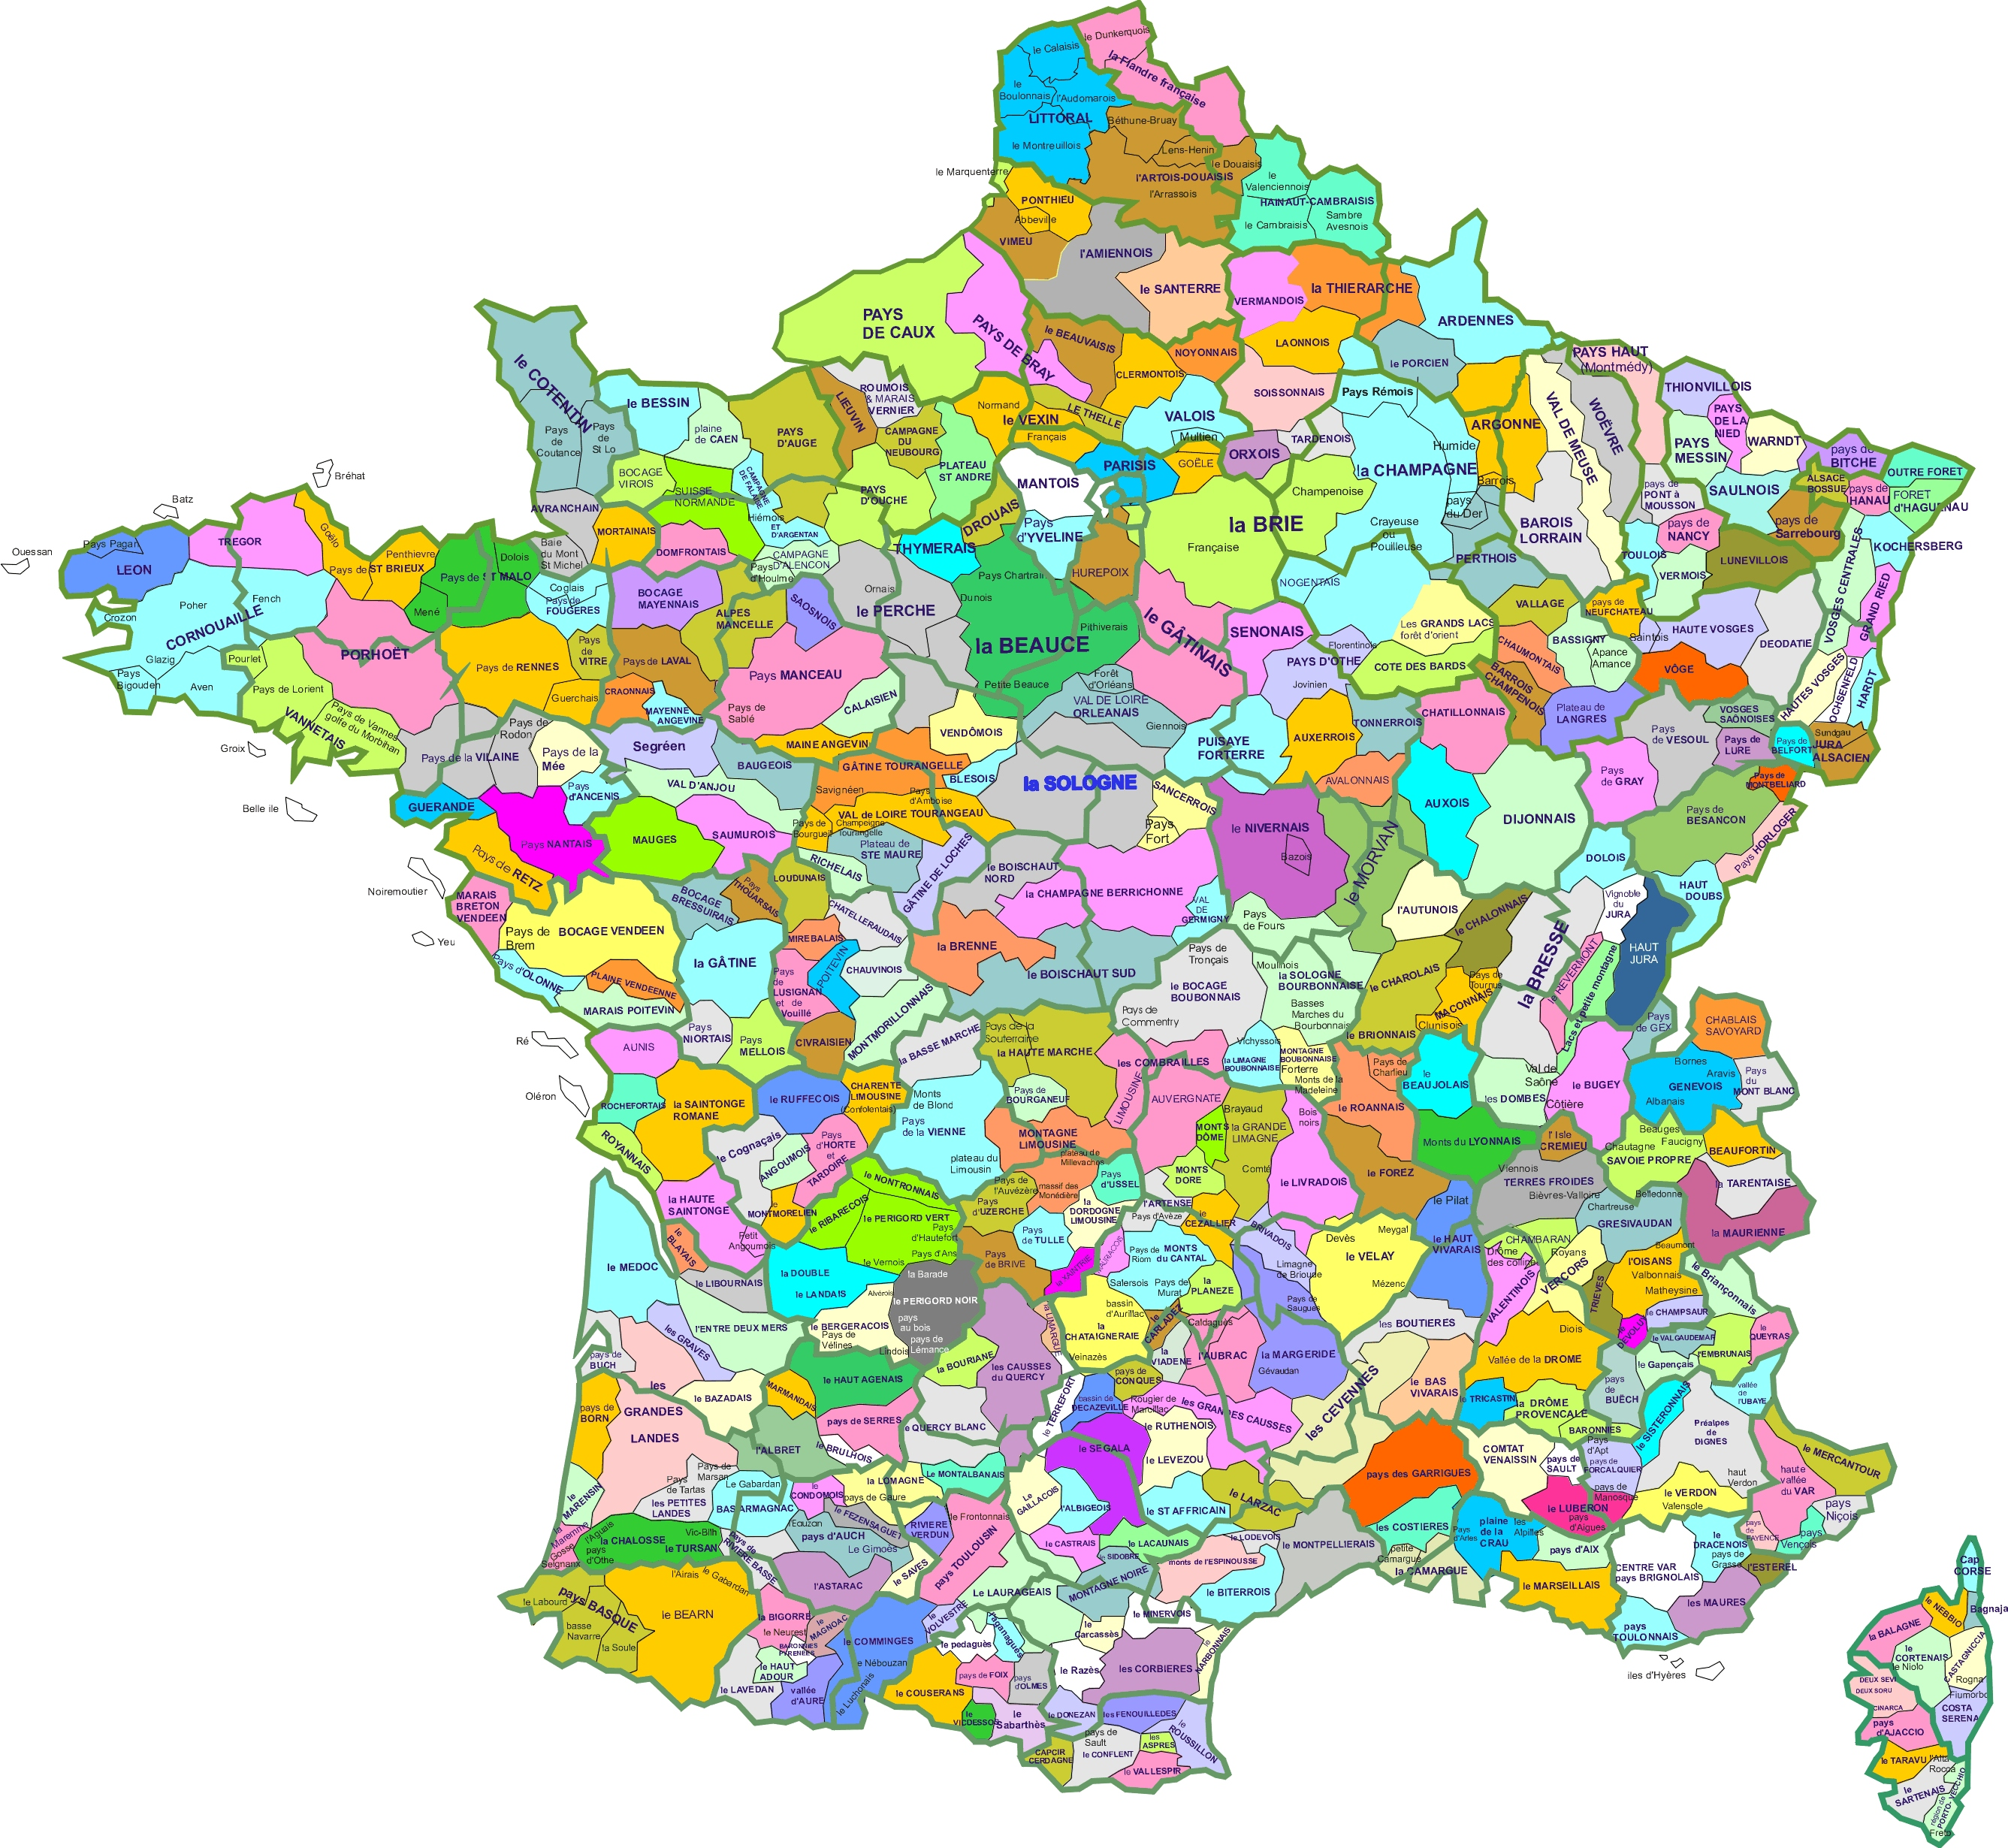 carte region naturelle france. (Image JPEG, 2673 × 2460 pixels